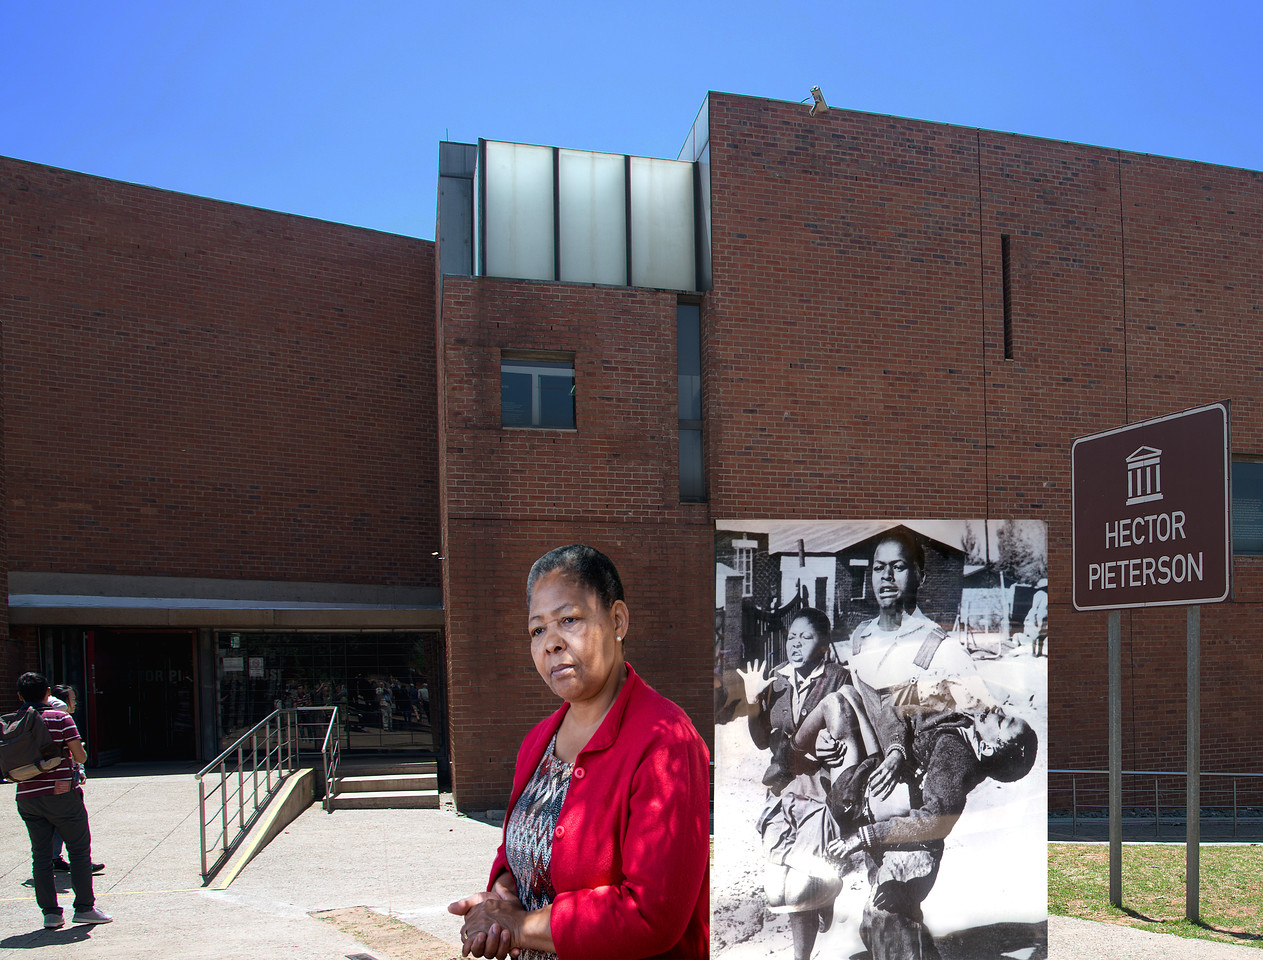 Hector Pieterson Museum with Antonetta, Hector's Sister